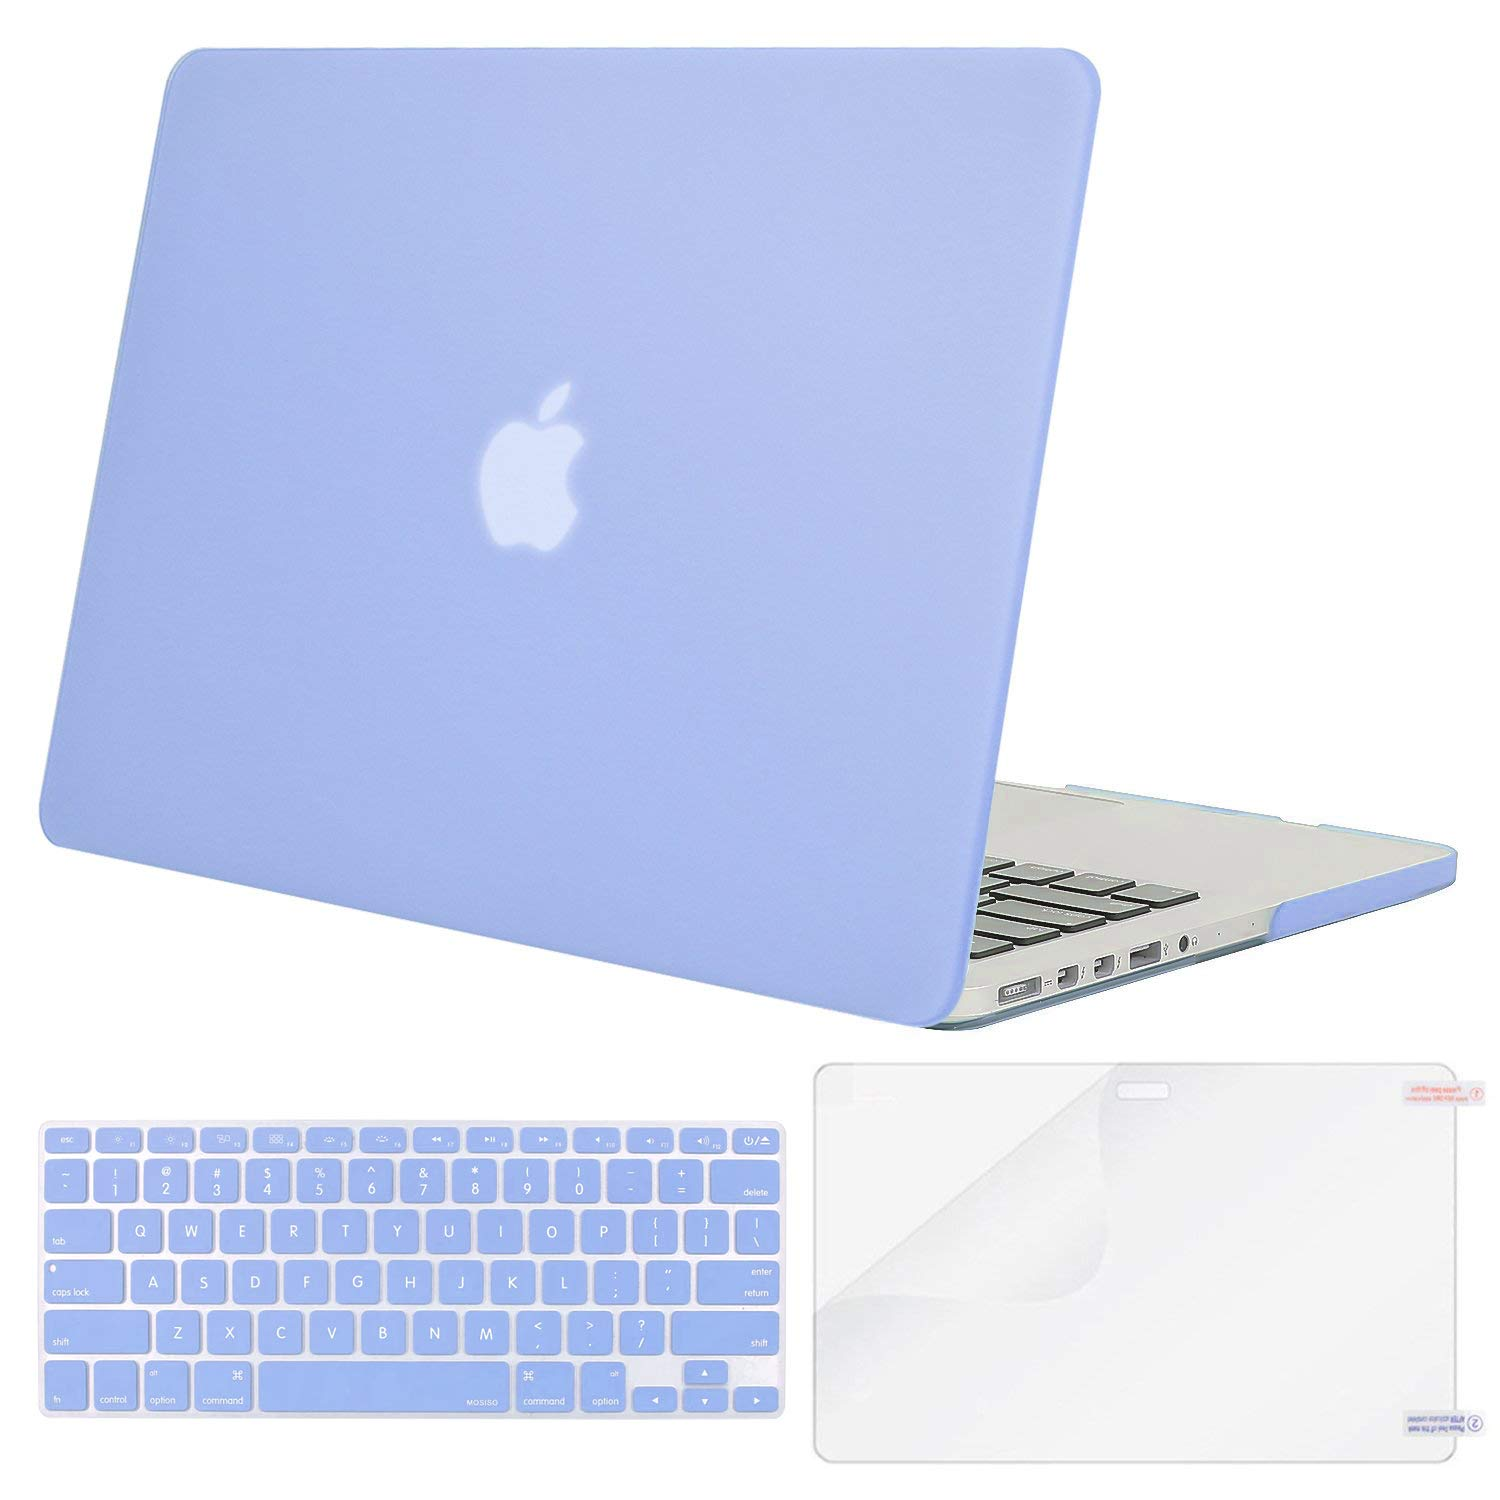 MOSISO Case Only Compatible with Older Version MacBook Pro 15 inch Model A1398 with Retina Display (2015 - end 2012 Release), Plastic Hard Shell & Keyboard Cover & Screen Protector, Serenity Blue by MOSISO